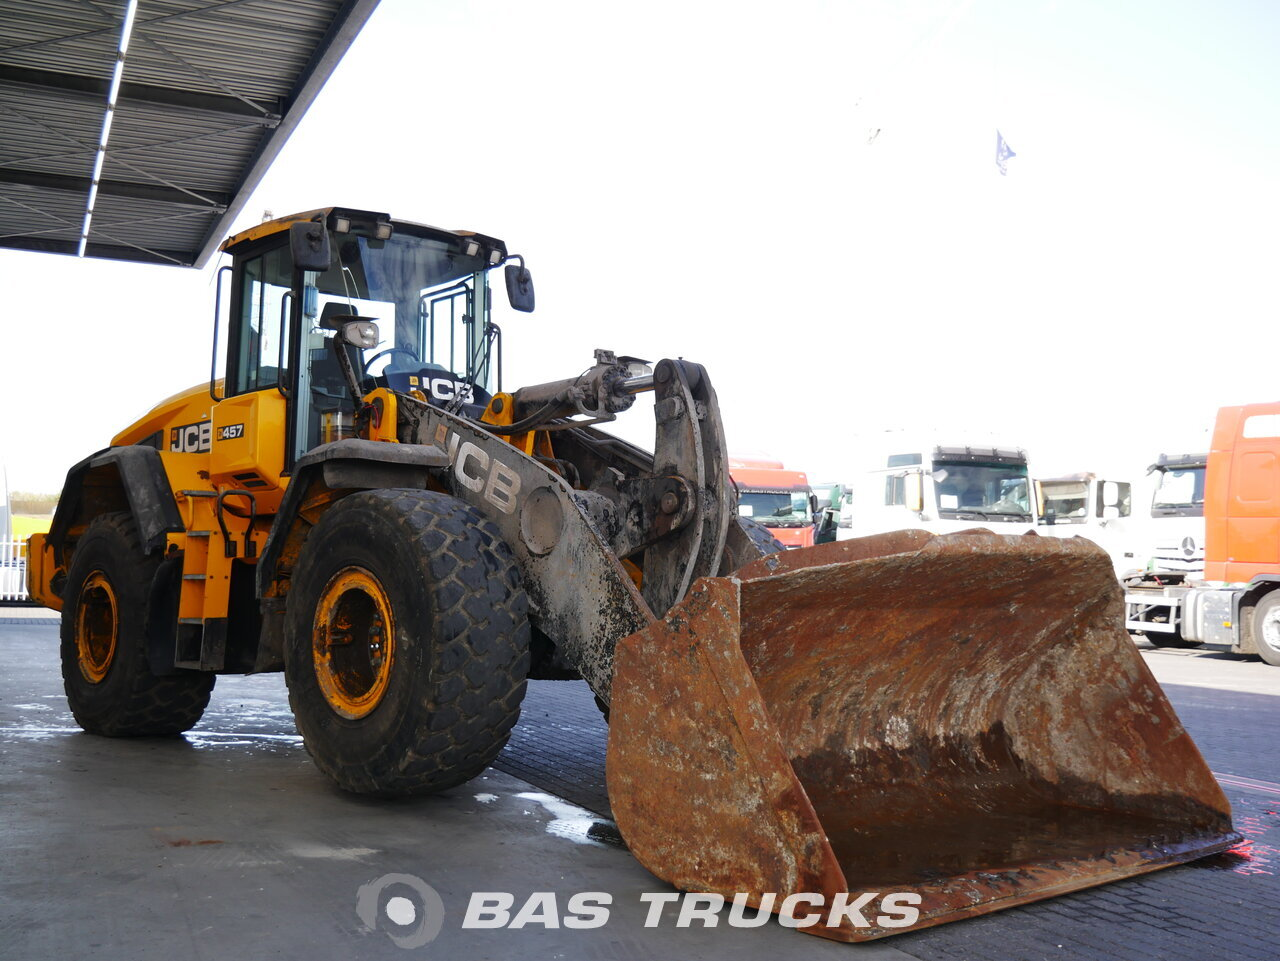 For sale at BAS Trucks: JCB 457 4X4 01/2016